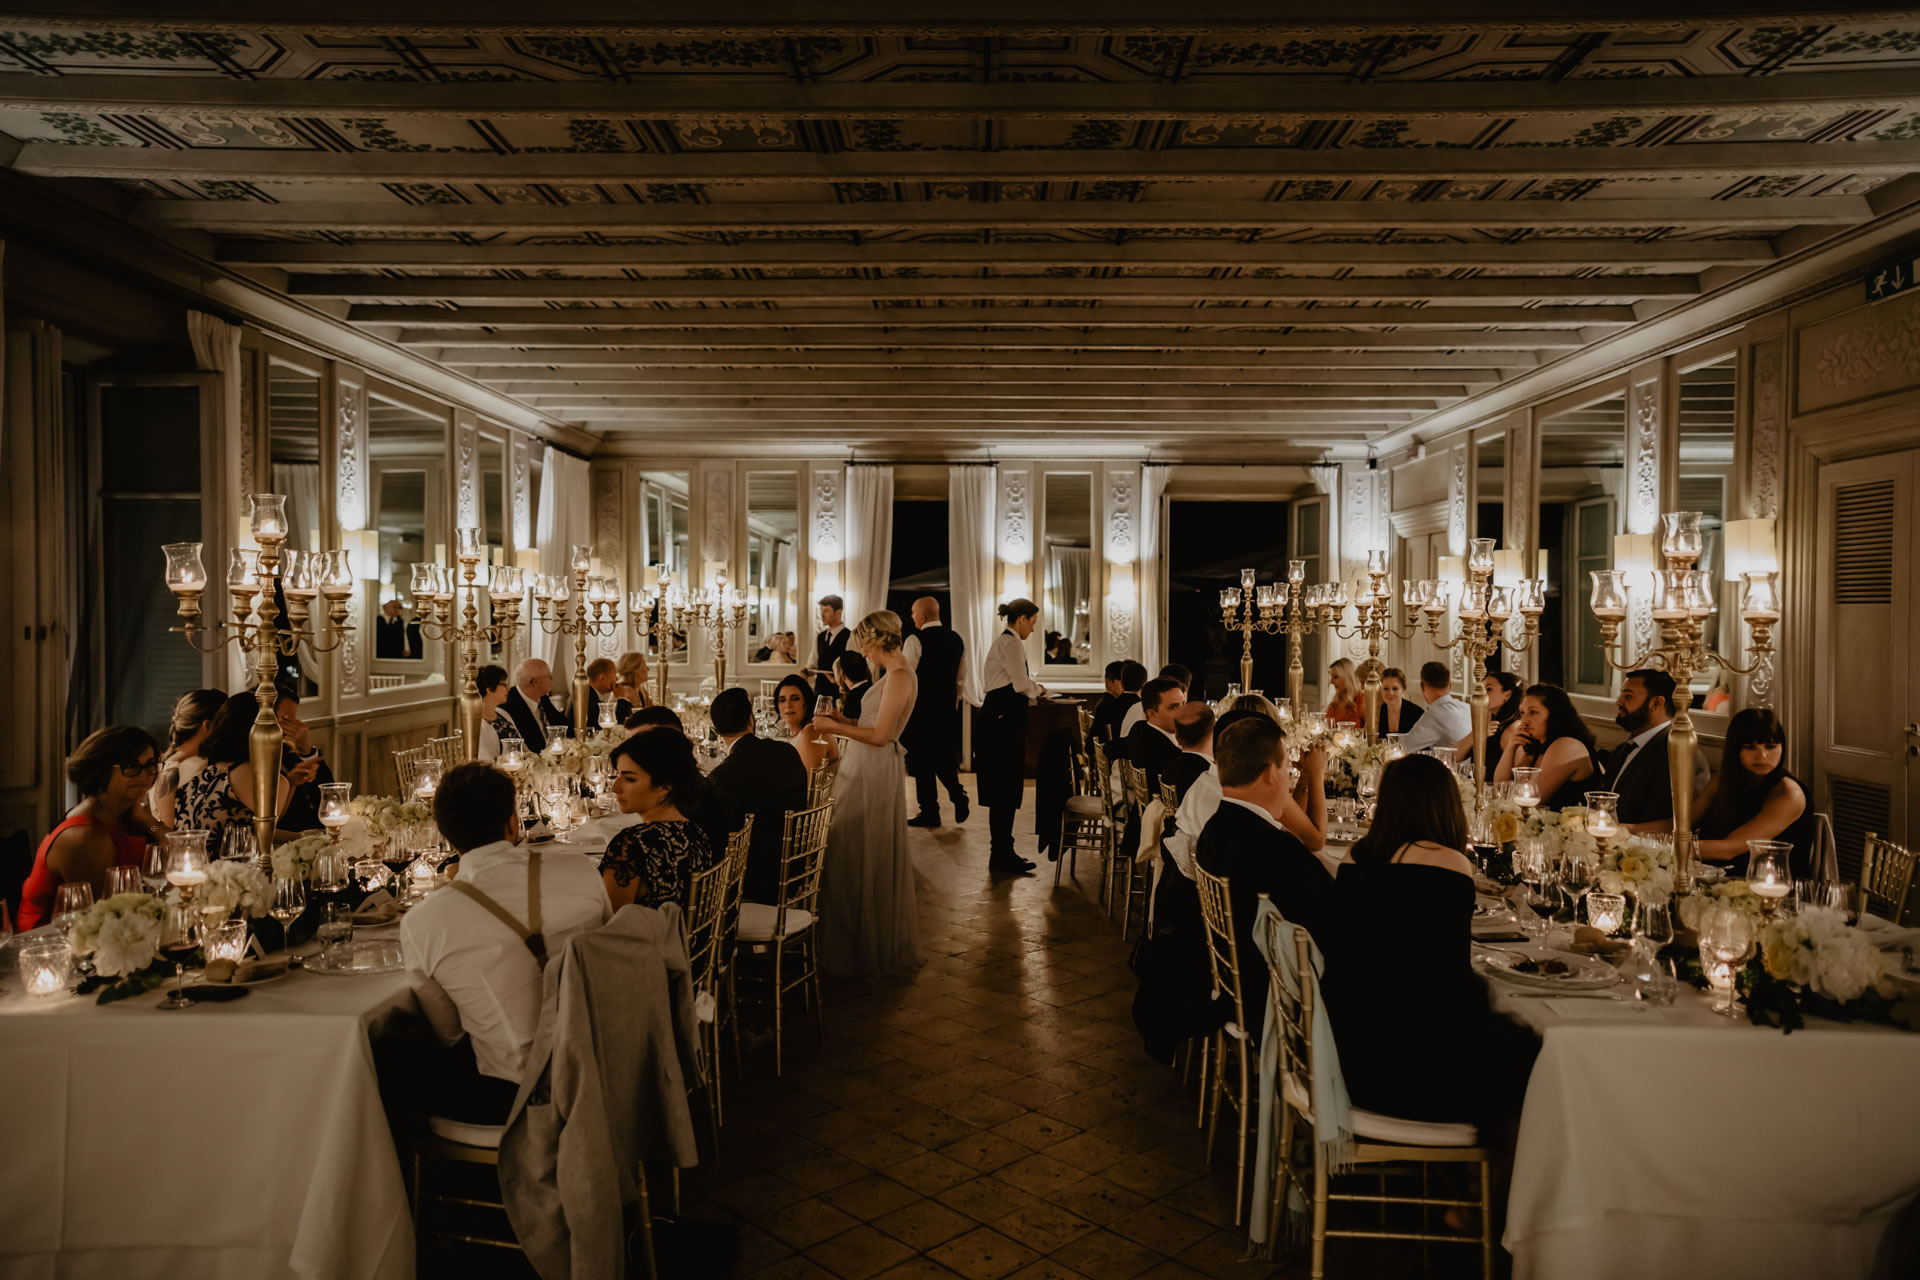 - 40 :: A breath-taking wedding in Rome, the eternal city :: Luxury wedding photography - 39 ::  - 40